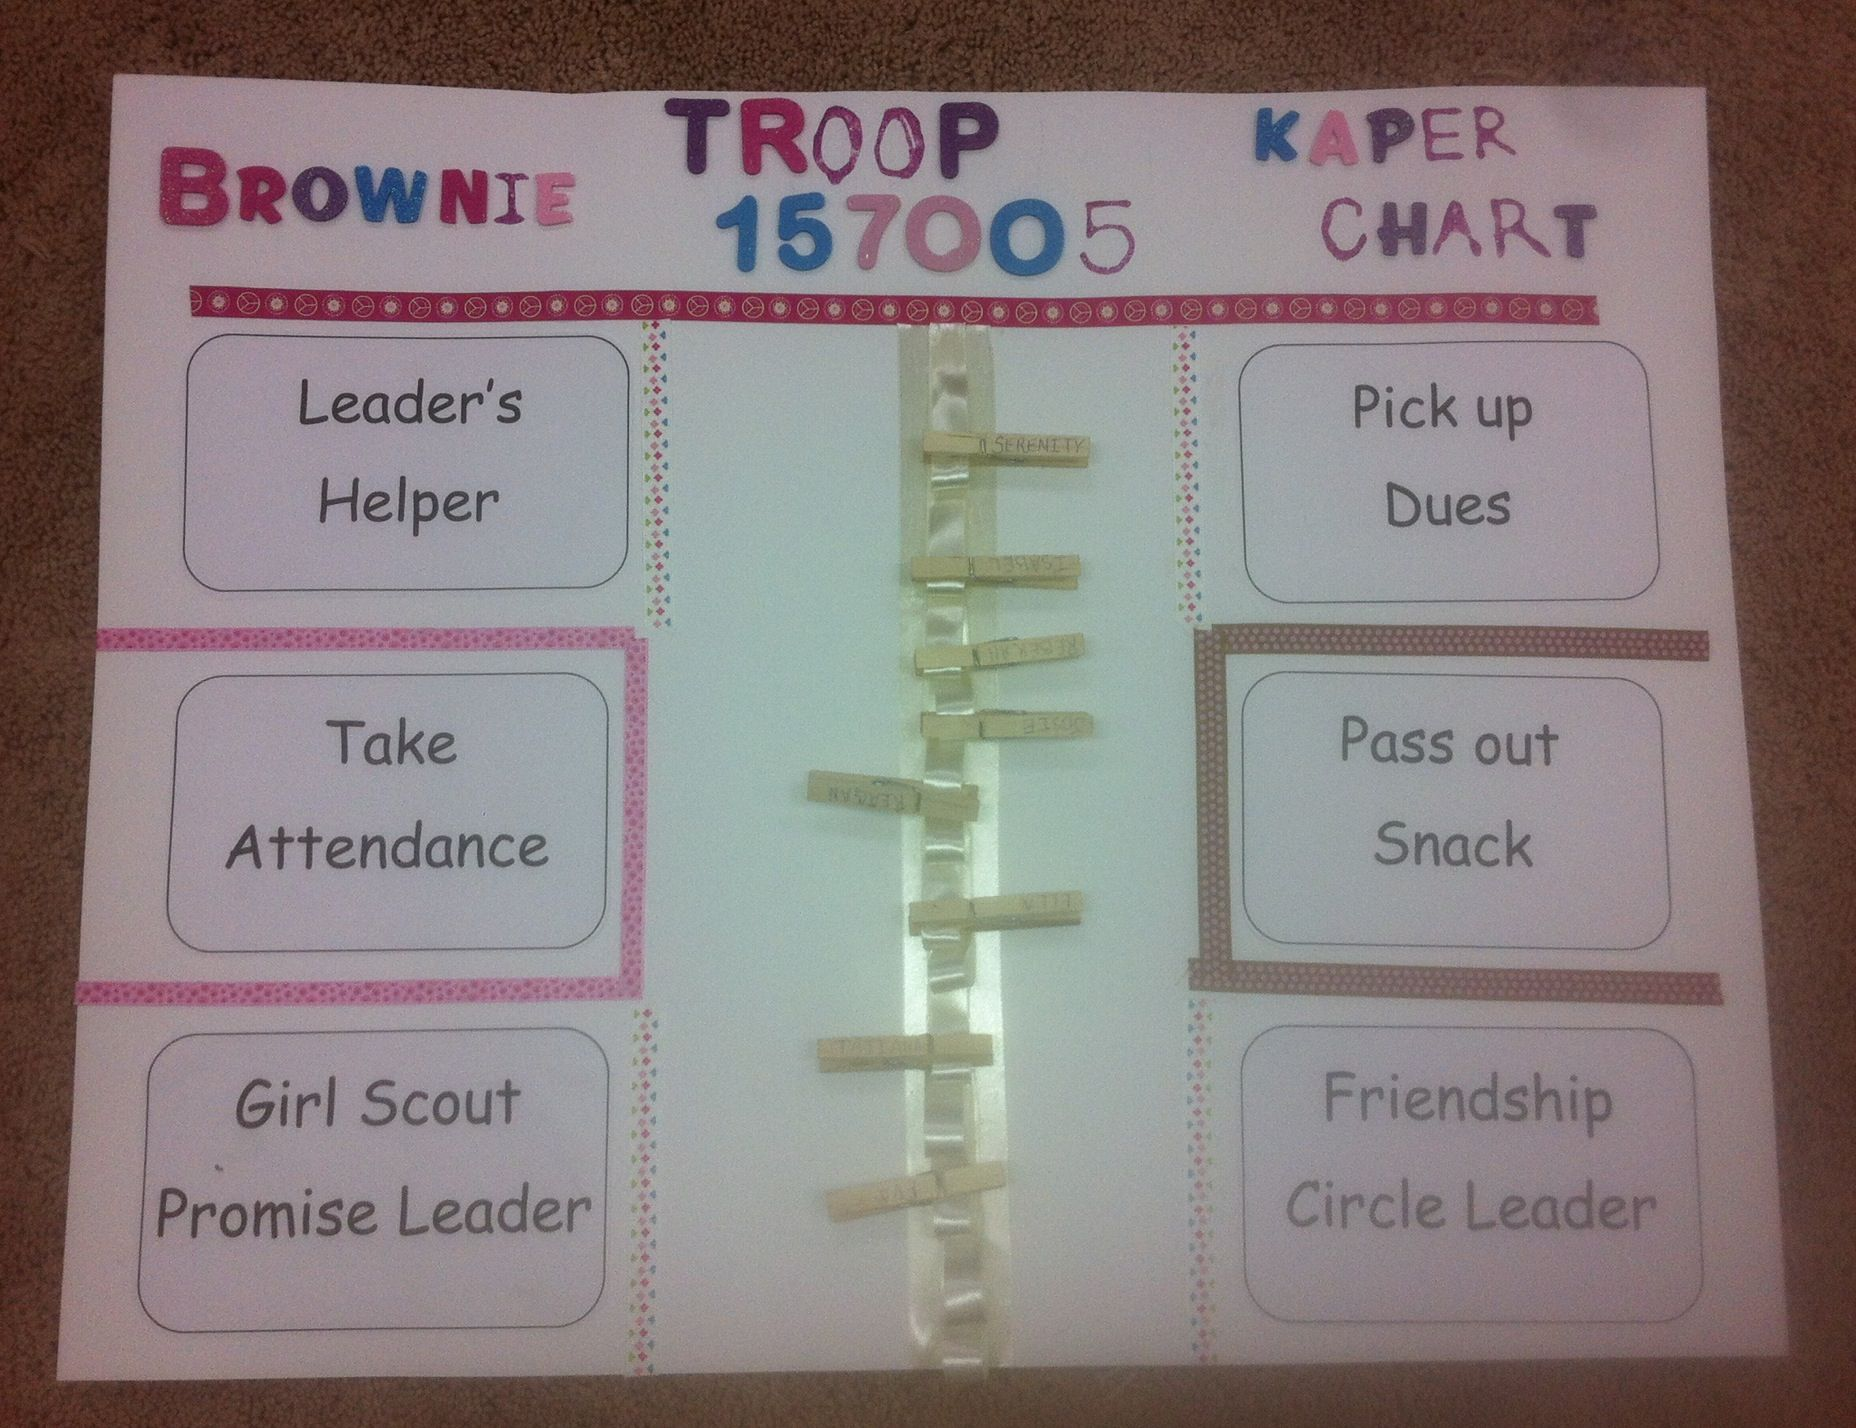 This Is The Kaper Chart I Made For Our Brownie Troop We Wanted To